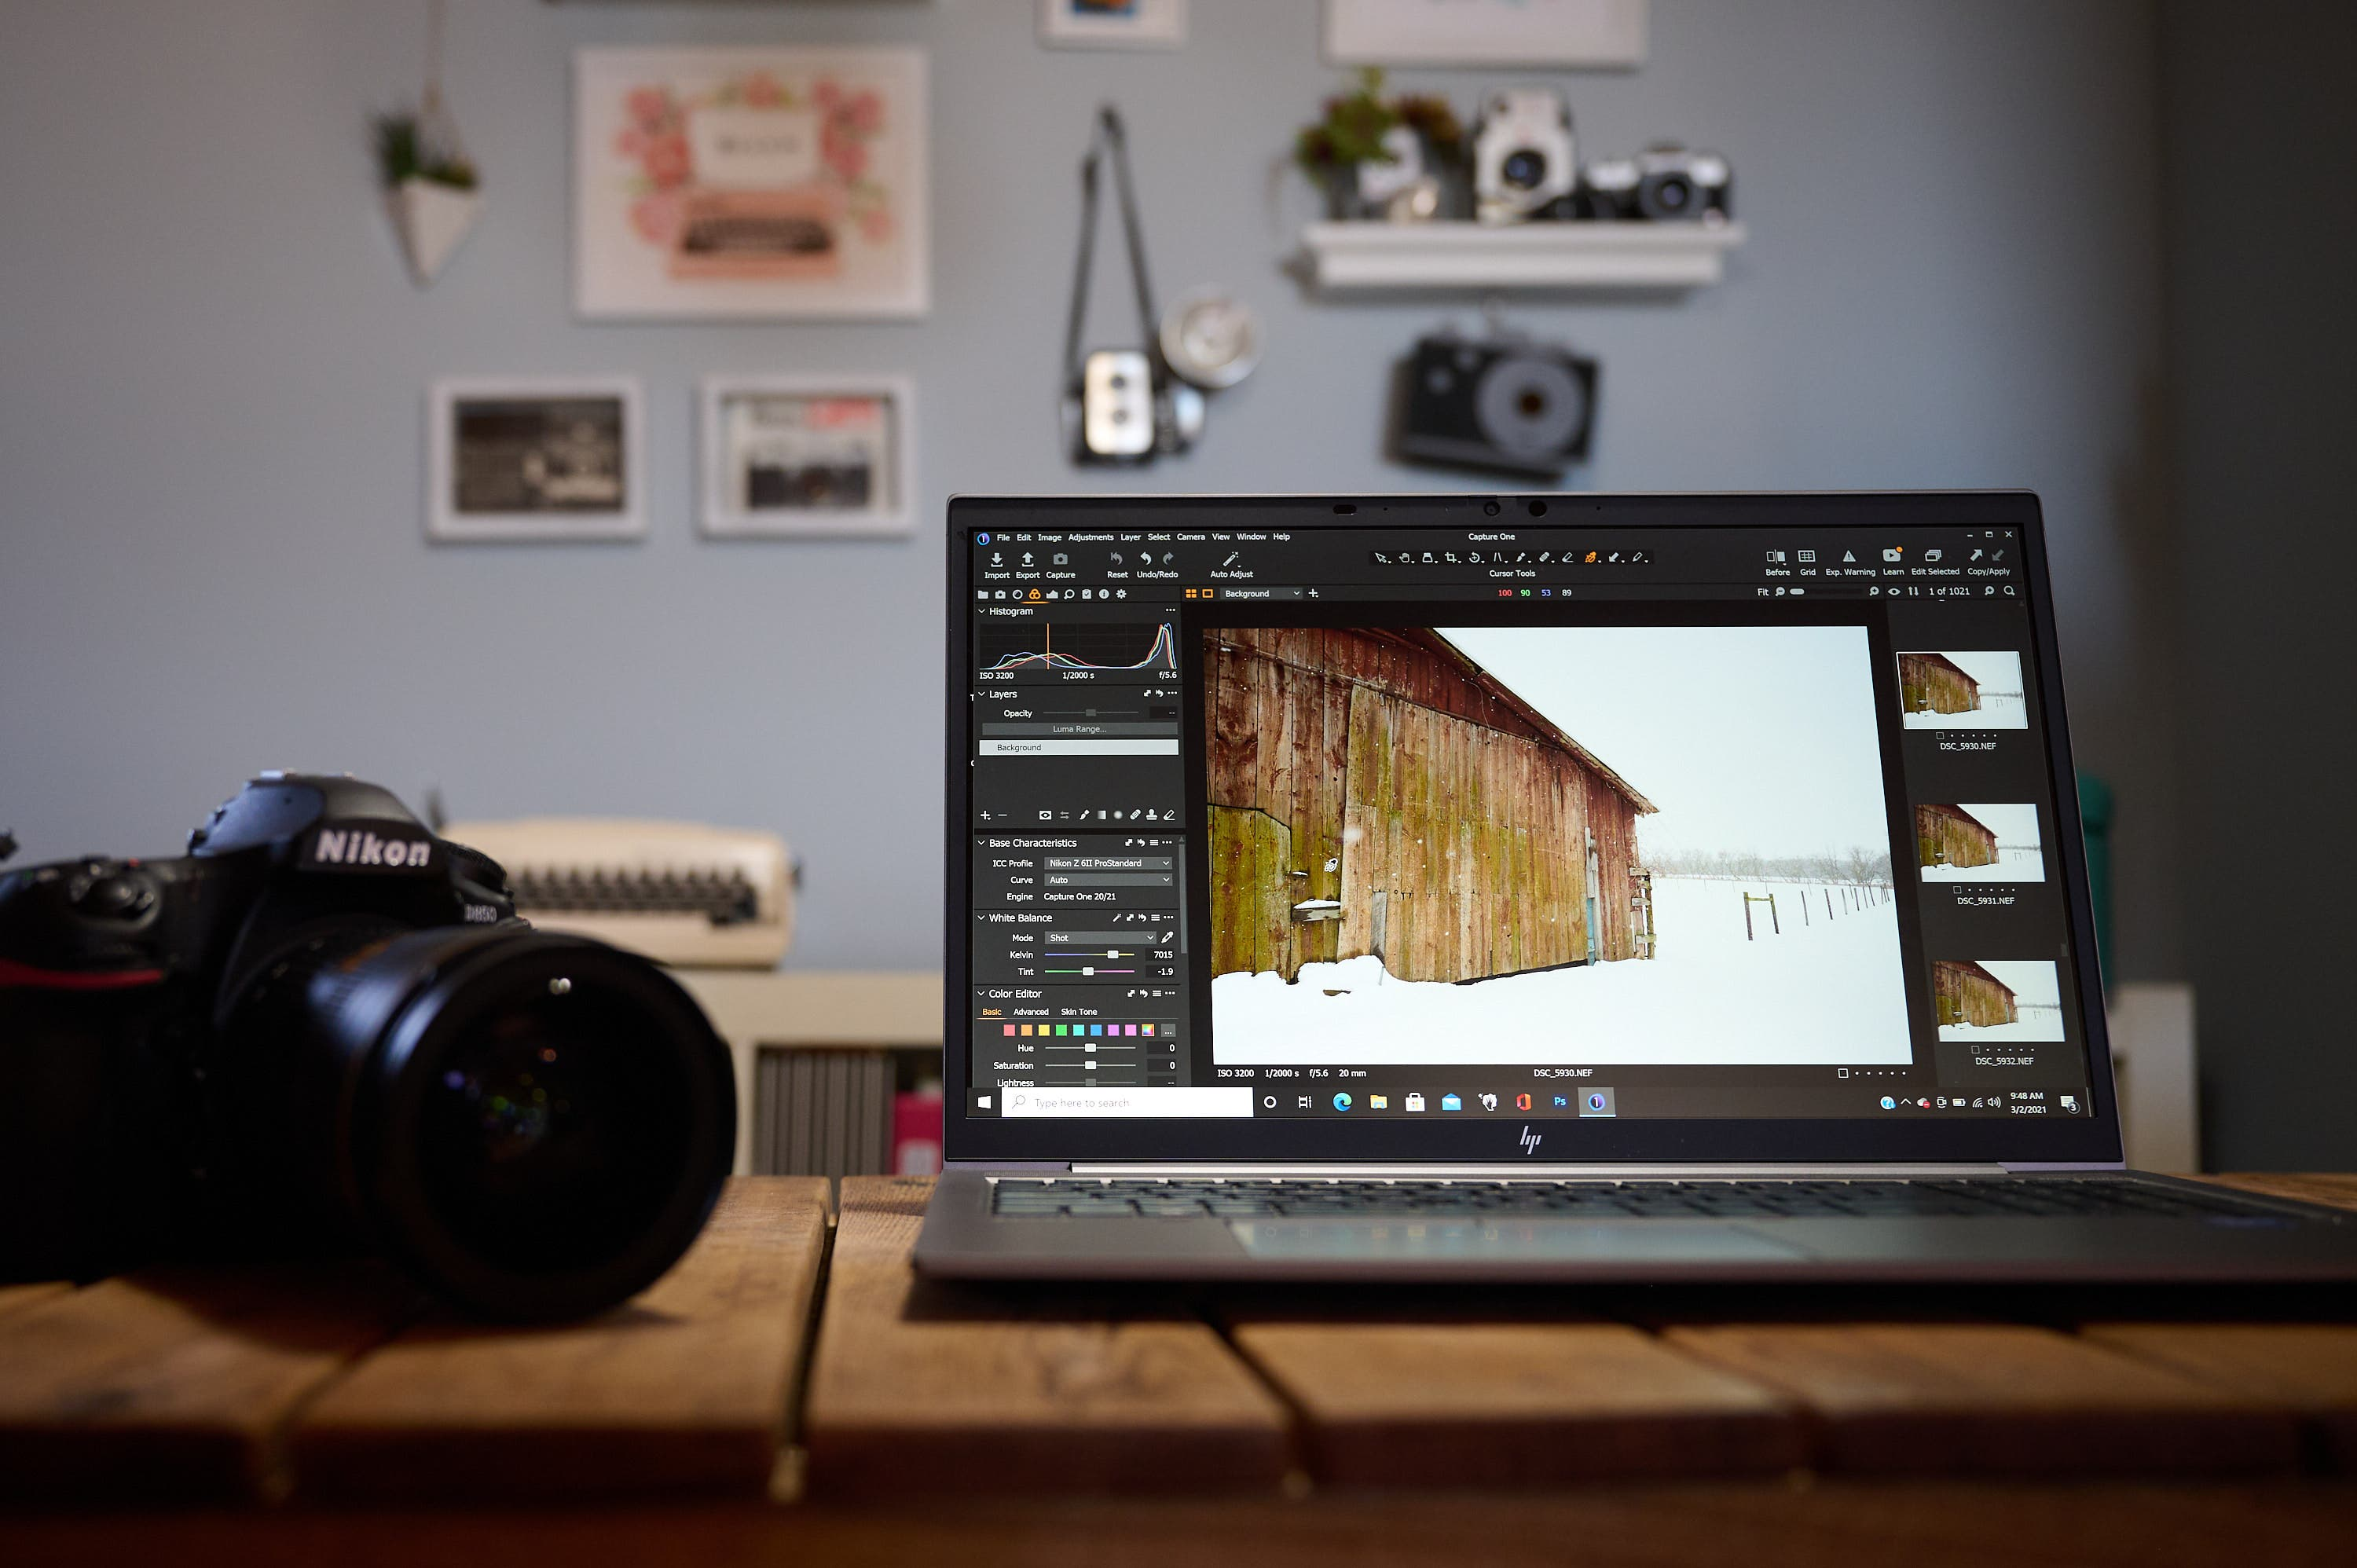 This Powerful PC Has a Gorgeous Screen: HP ZBook Firefly G8 Review